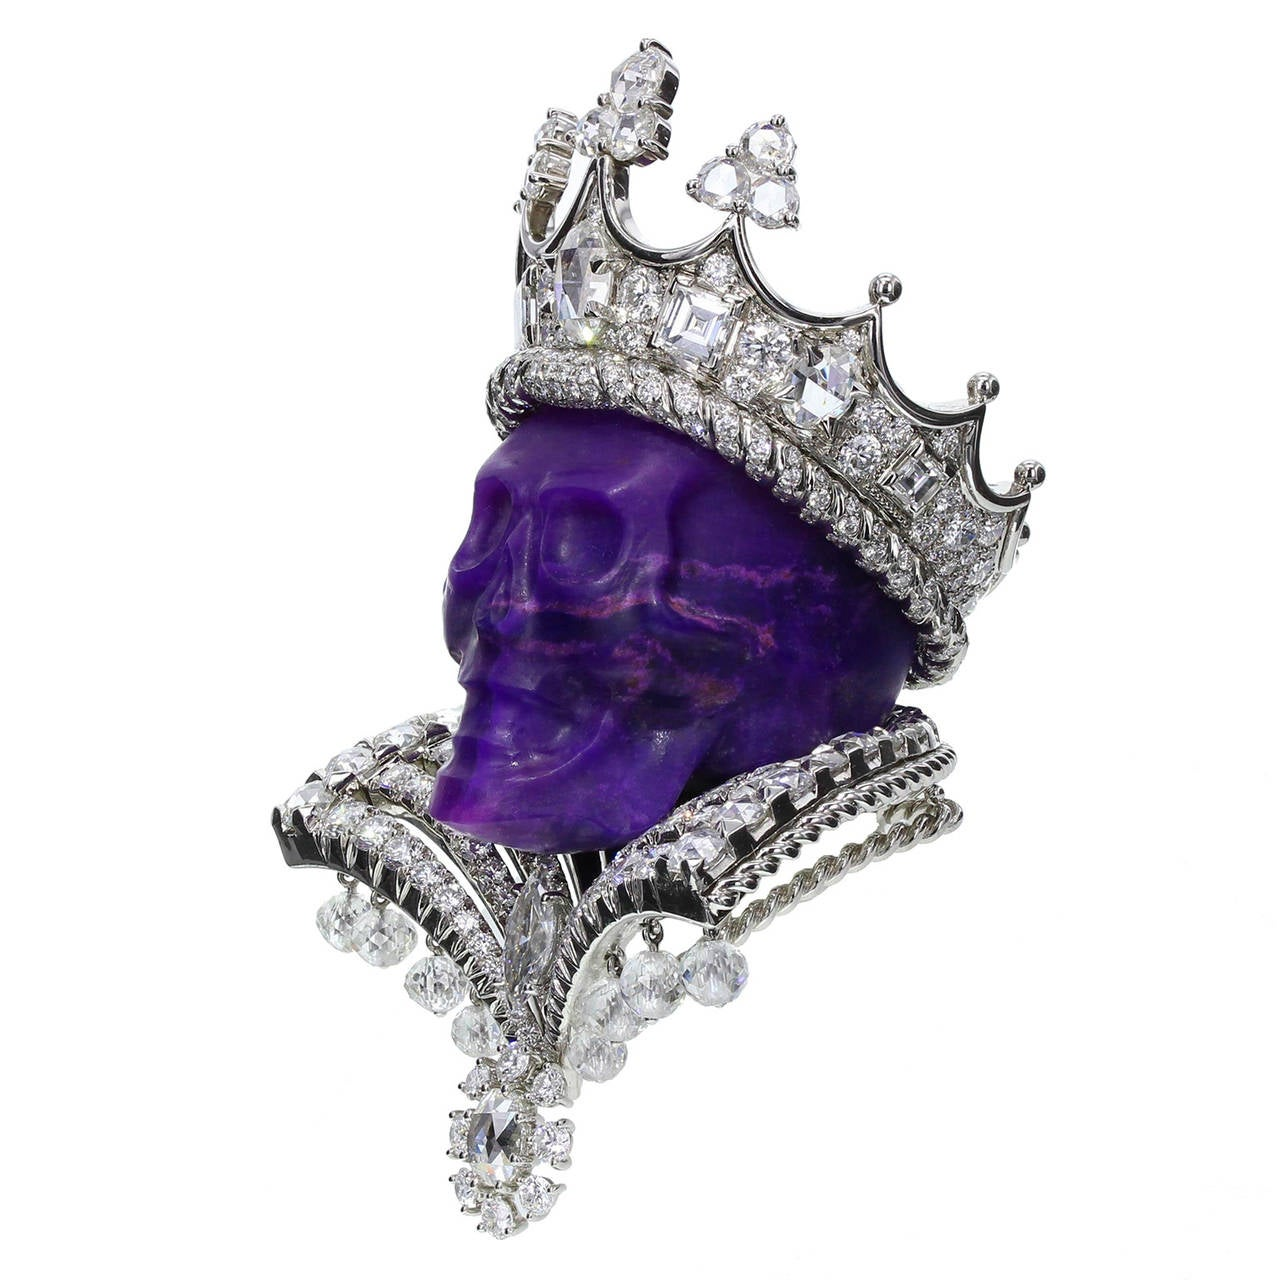 'King of Sugilite' pendant in platinum, white gold, diamond and sugilite by Dior Joaillerie, designed by Victoire de Castellane. Part of the 2009 Reines et Rois Haute Joaillerie collection of 20 one-of-a-kind pieces, featuring ten queen rings and